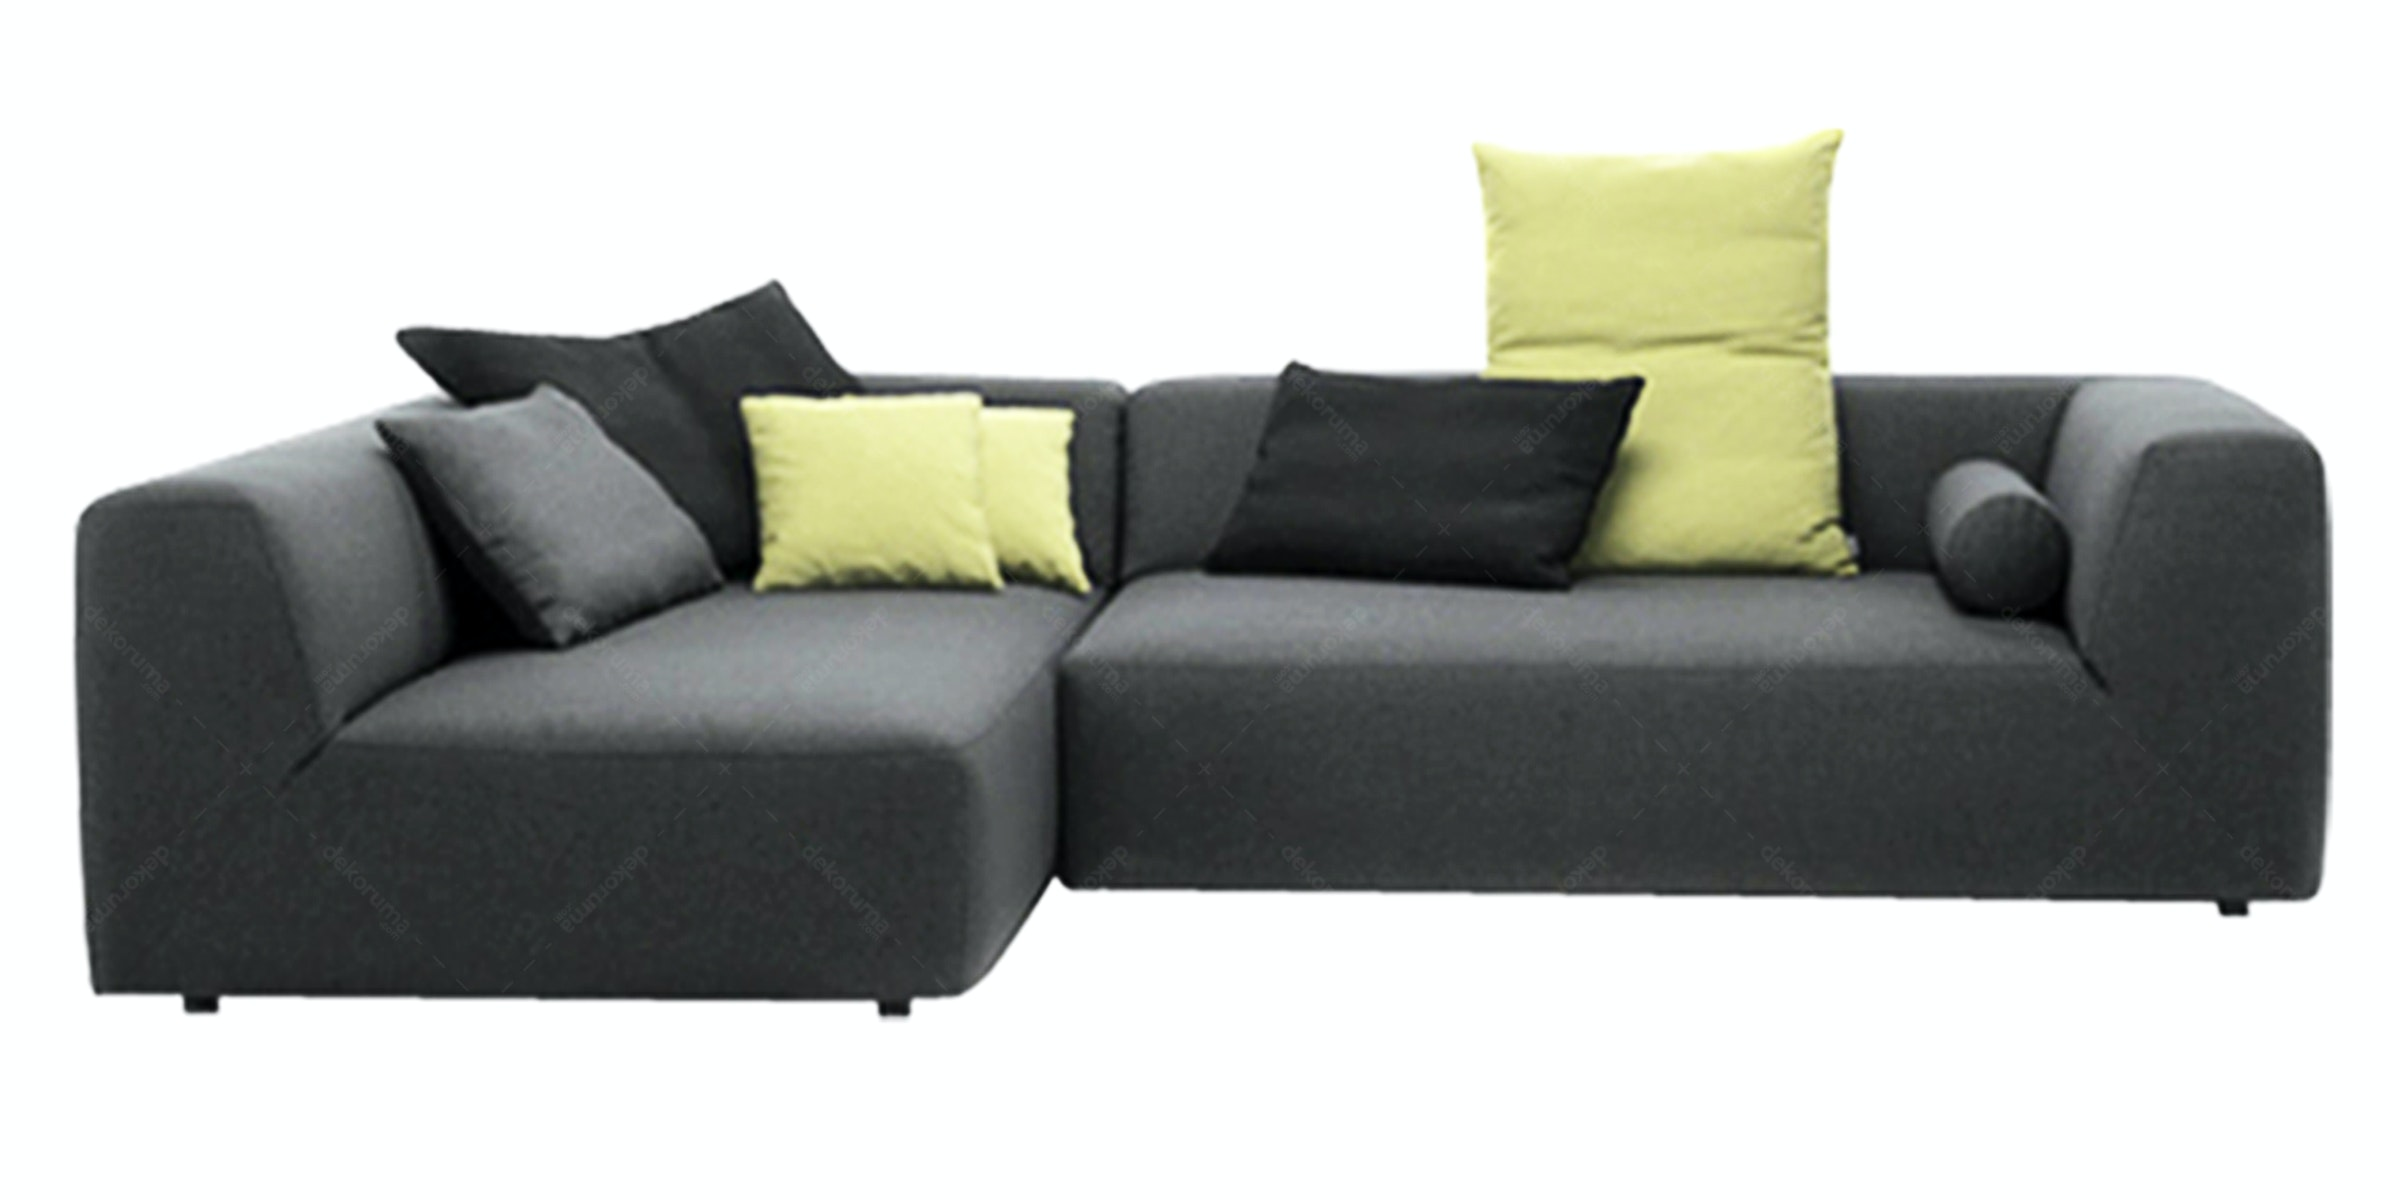 Ridente Bigfoot Sofa L Abu Kanan